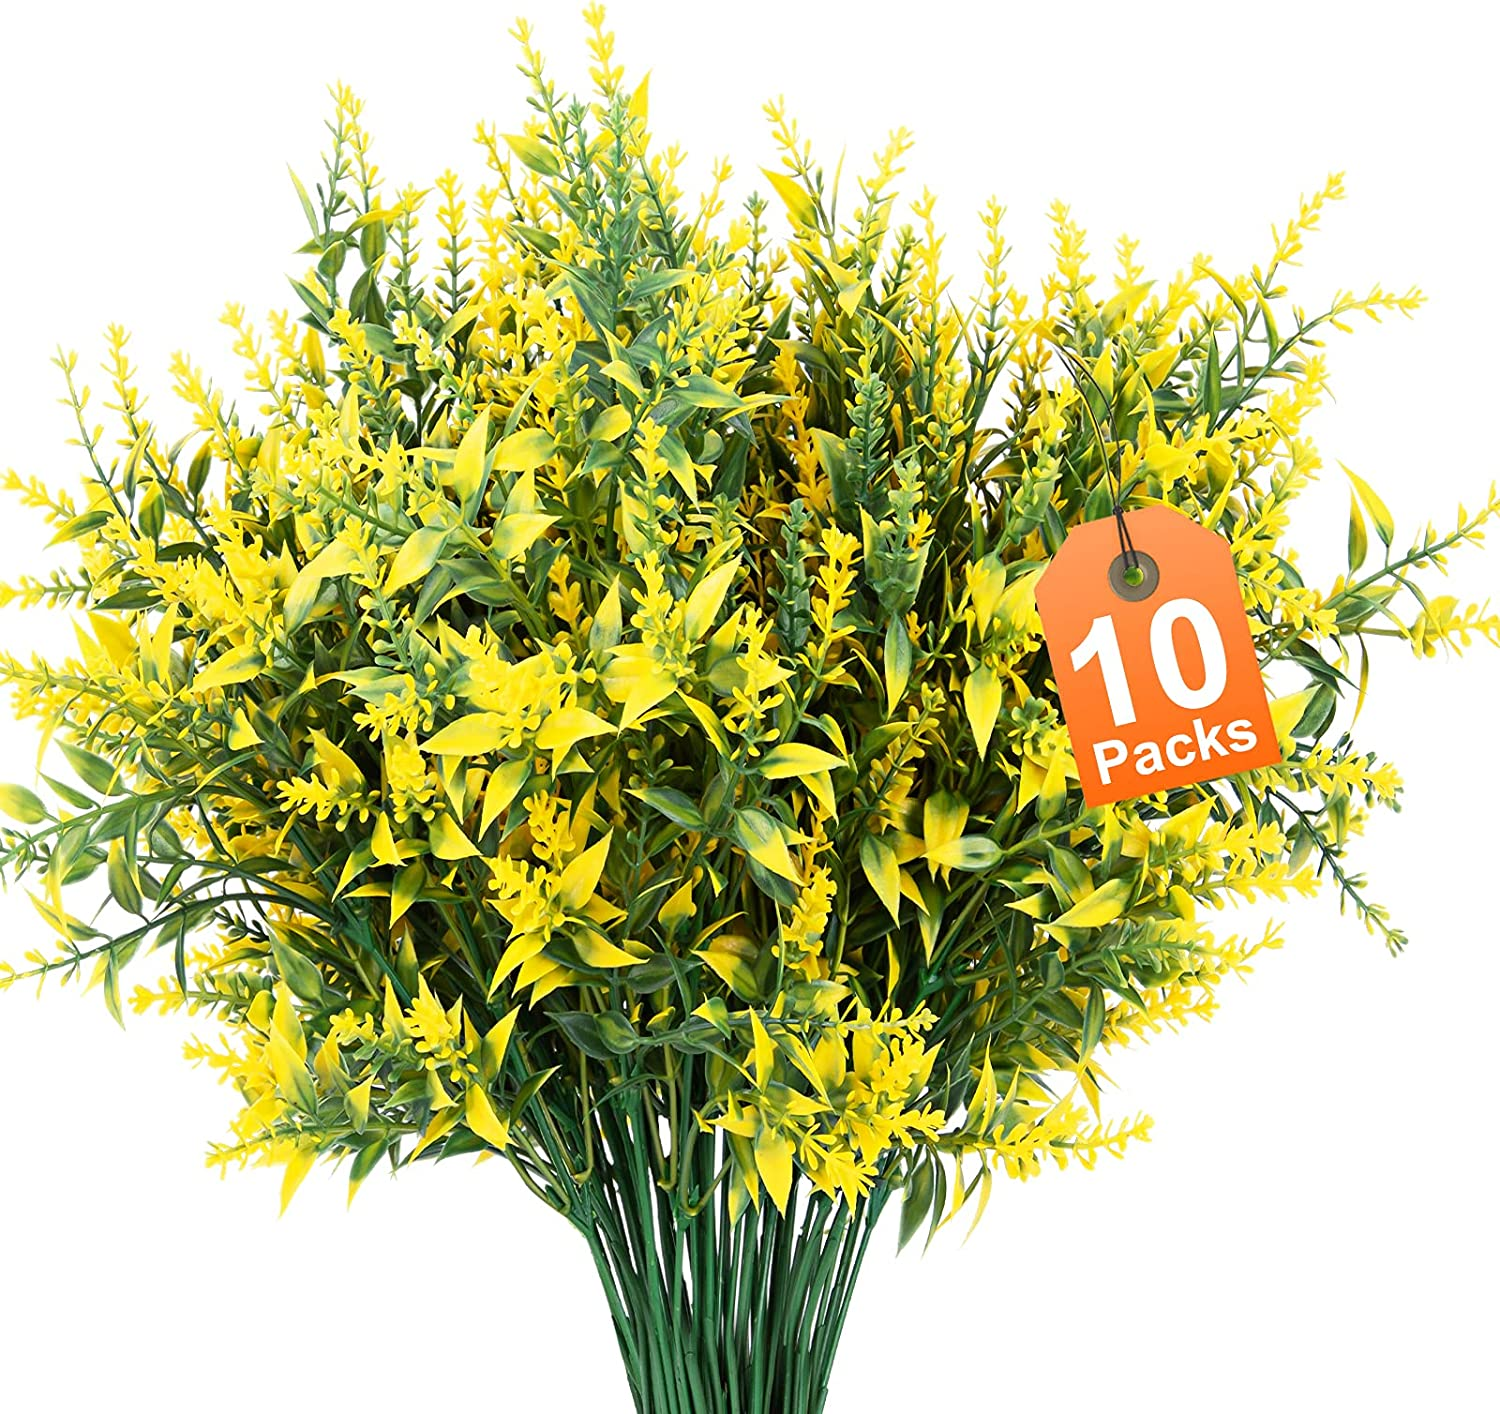 Artificial Department store New life Flowers 10 Packs Outdoor Resista Faux UV Fake